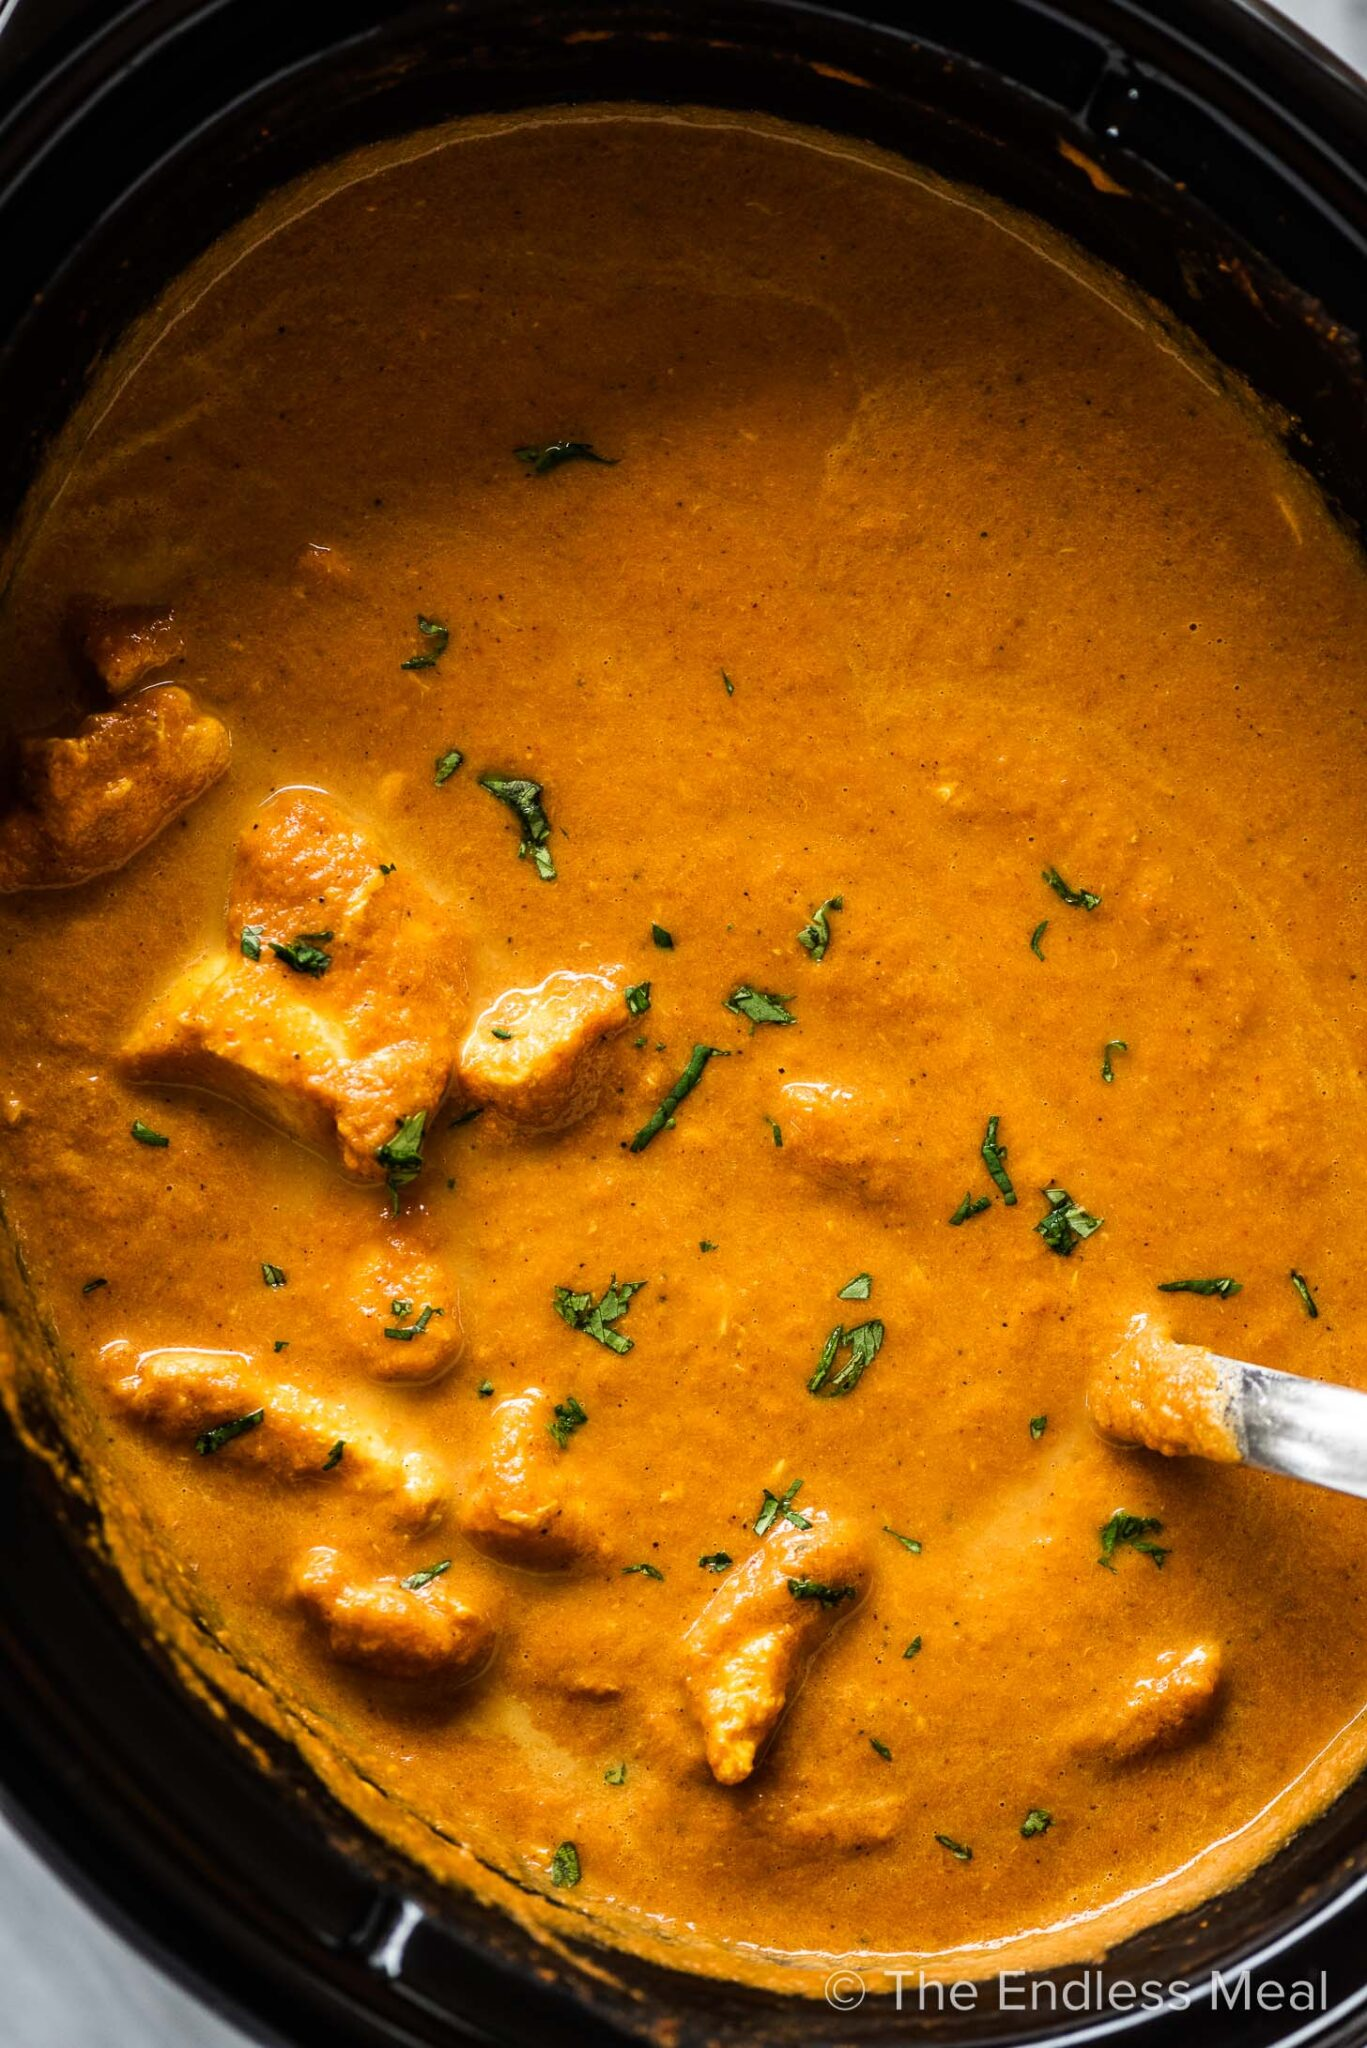 Crockpot butter chicken in a slow cooker with a ladle taking a spoonful.